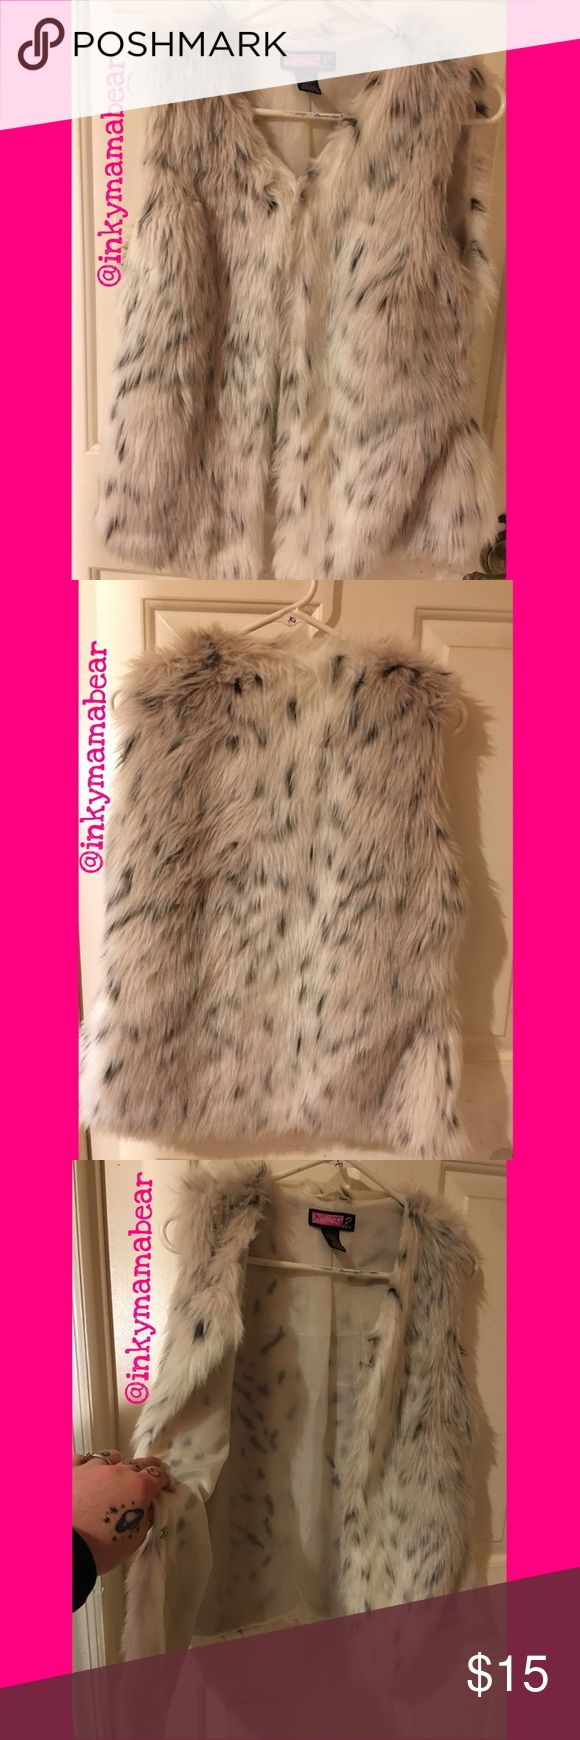 """Super Cute """"Spotted"""" Faux Fur Vest! This """"spotted"""" faux fur vest reminded me of Cruella DeVille, so I just HAD to buy it! Unfortunately, I only wore it a handful of times even though I loved it. The brand is """"Say What?"""" And this is a size Large. Super comfy and very trendy (and VERY soft, it doesn't have that """"plastic-y feel some faux fur things have). Feel free to ask questions🙂 no lowballing...booo😵reasonable offers👌👌 Say What? Jackets & Coats Vests"""